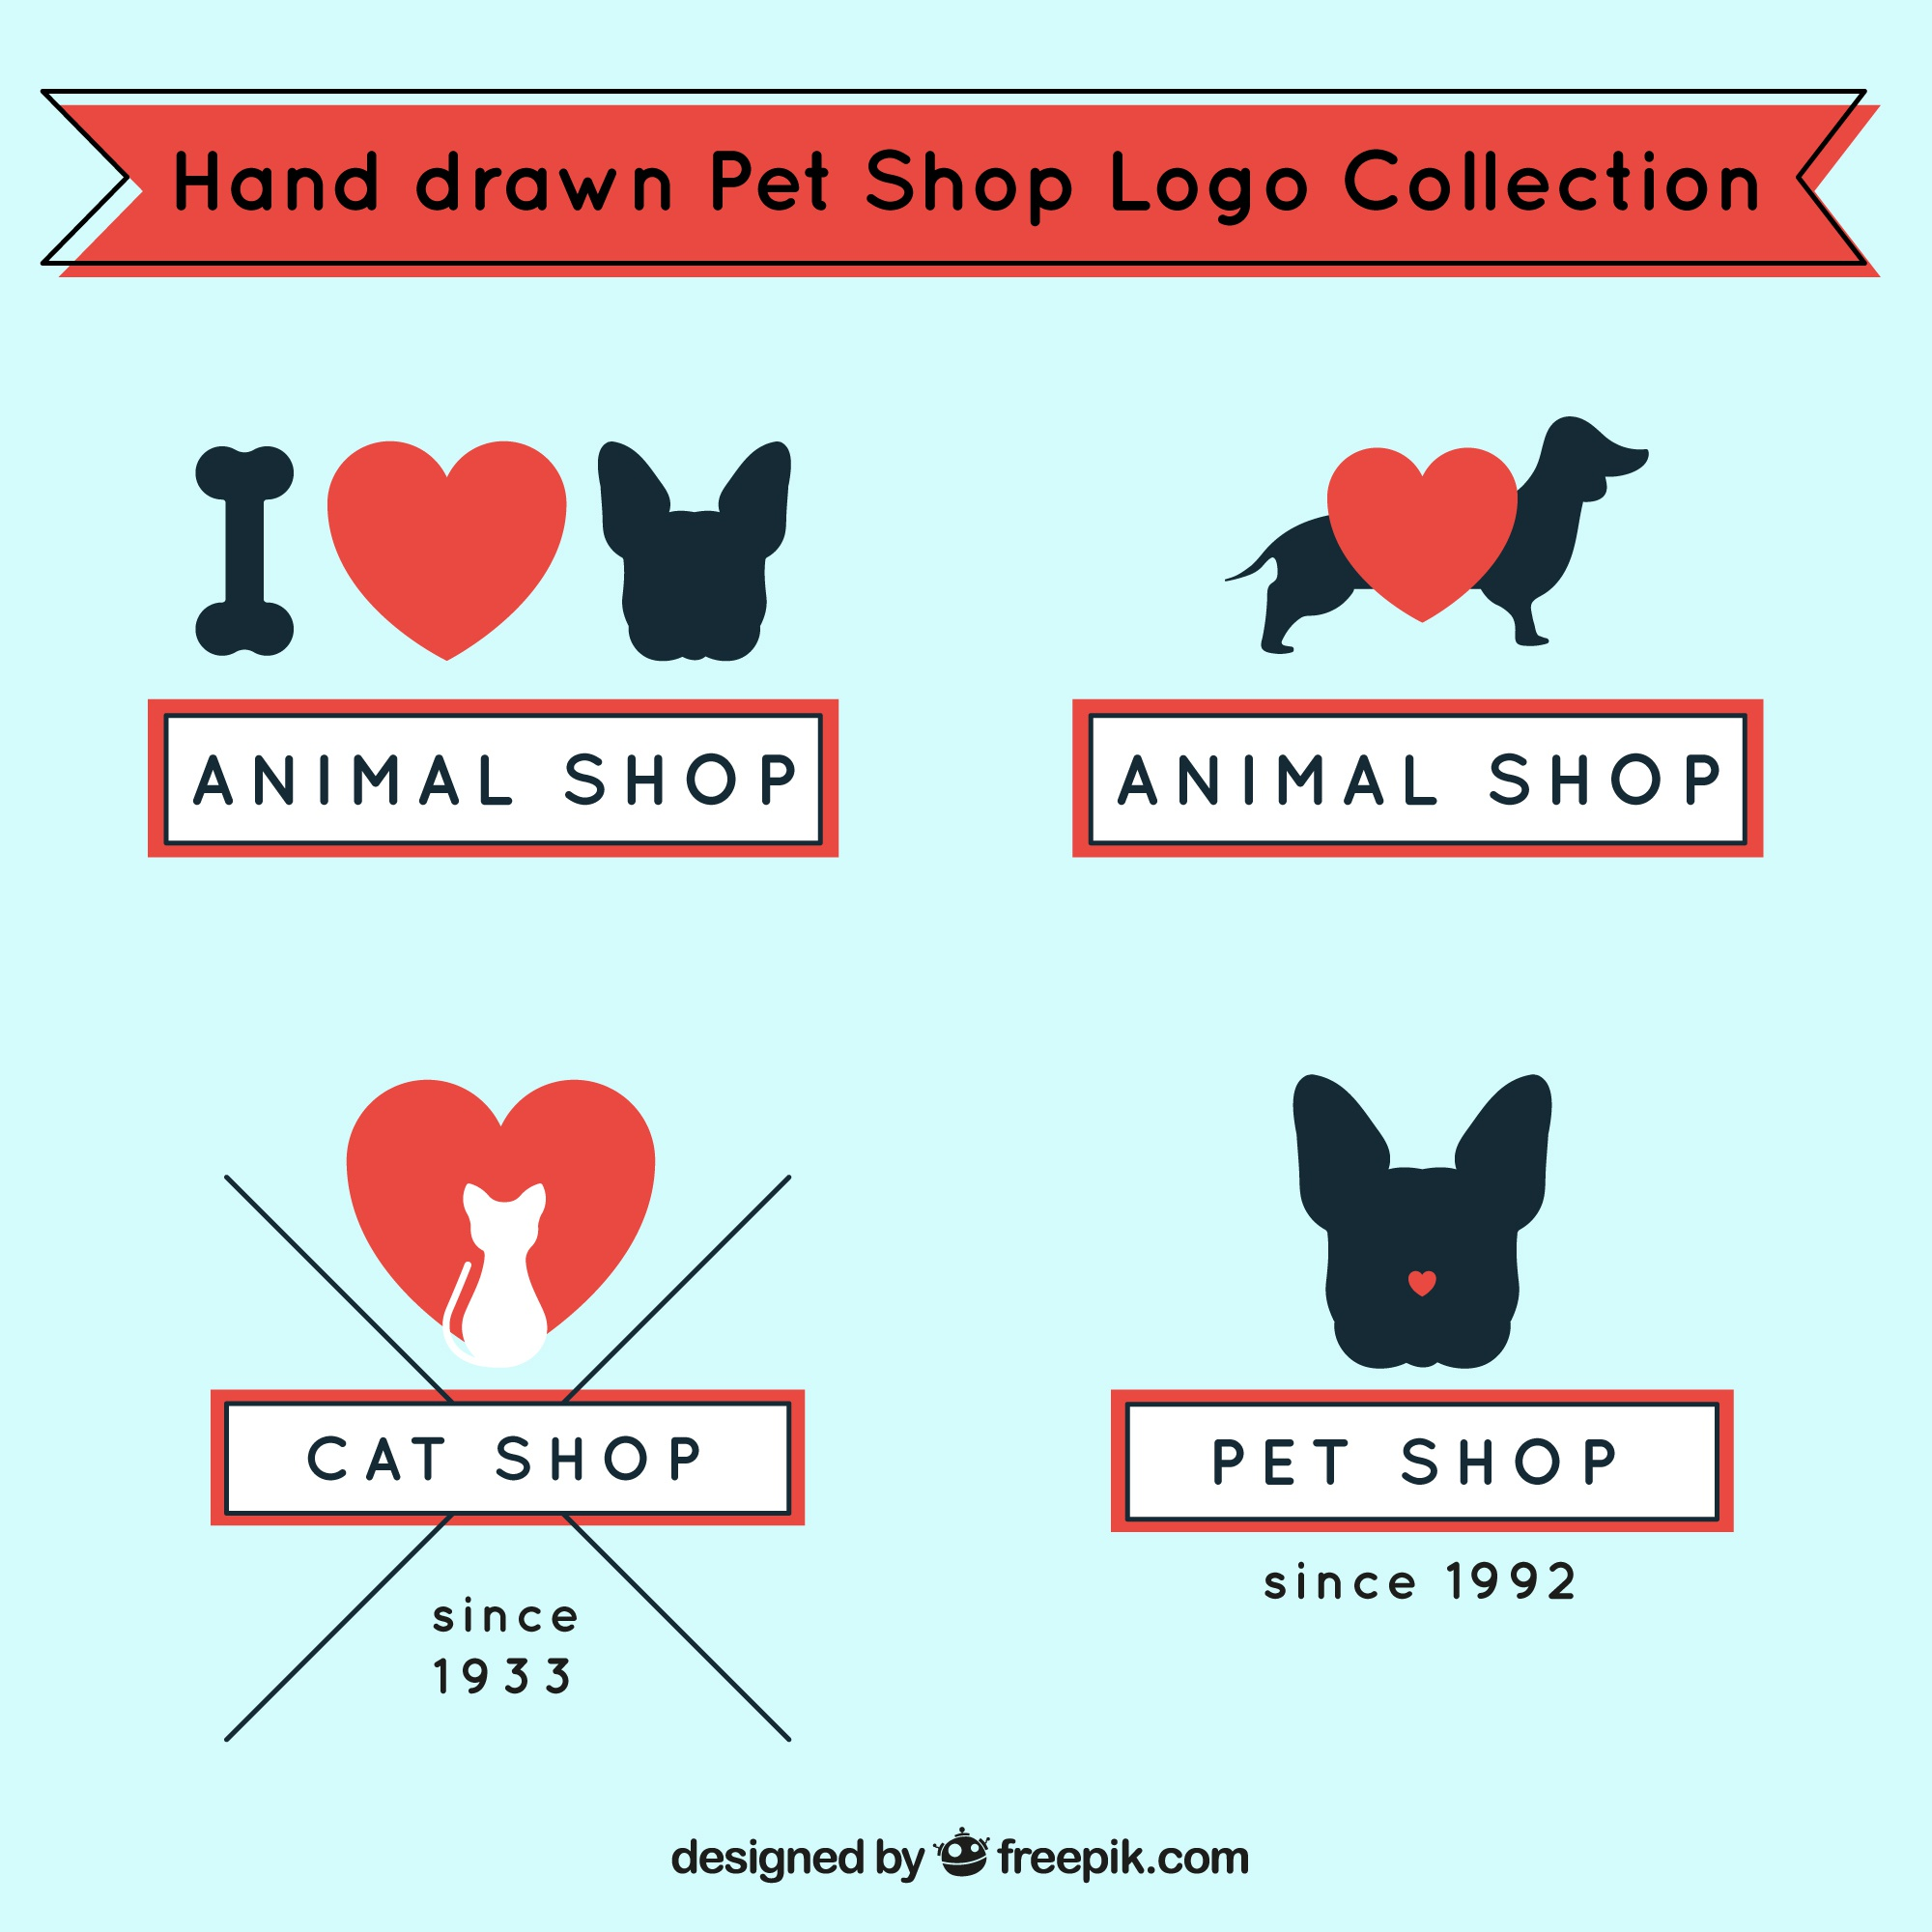 Logos for pet shop with red details